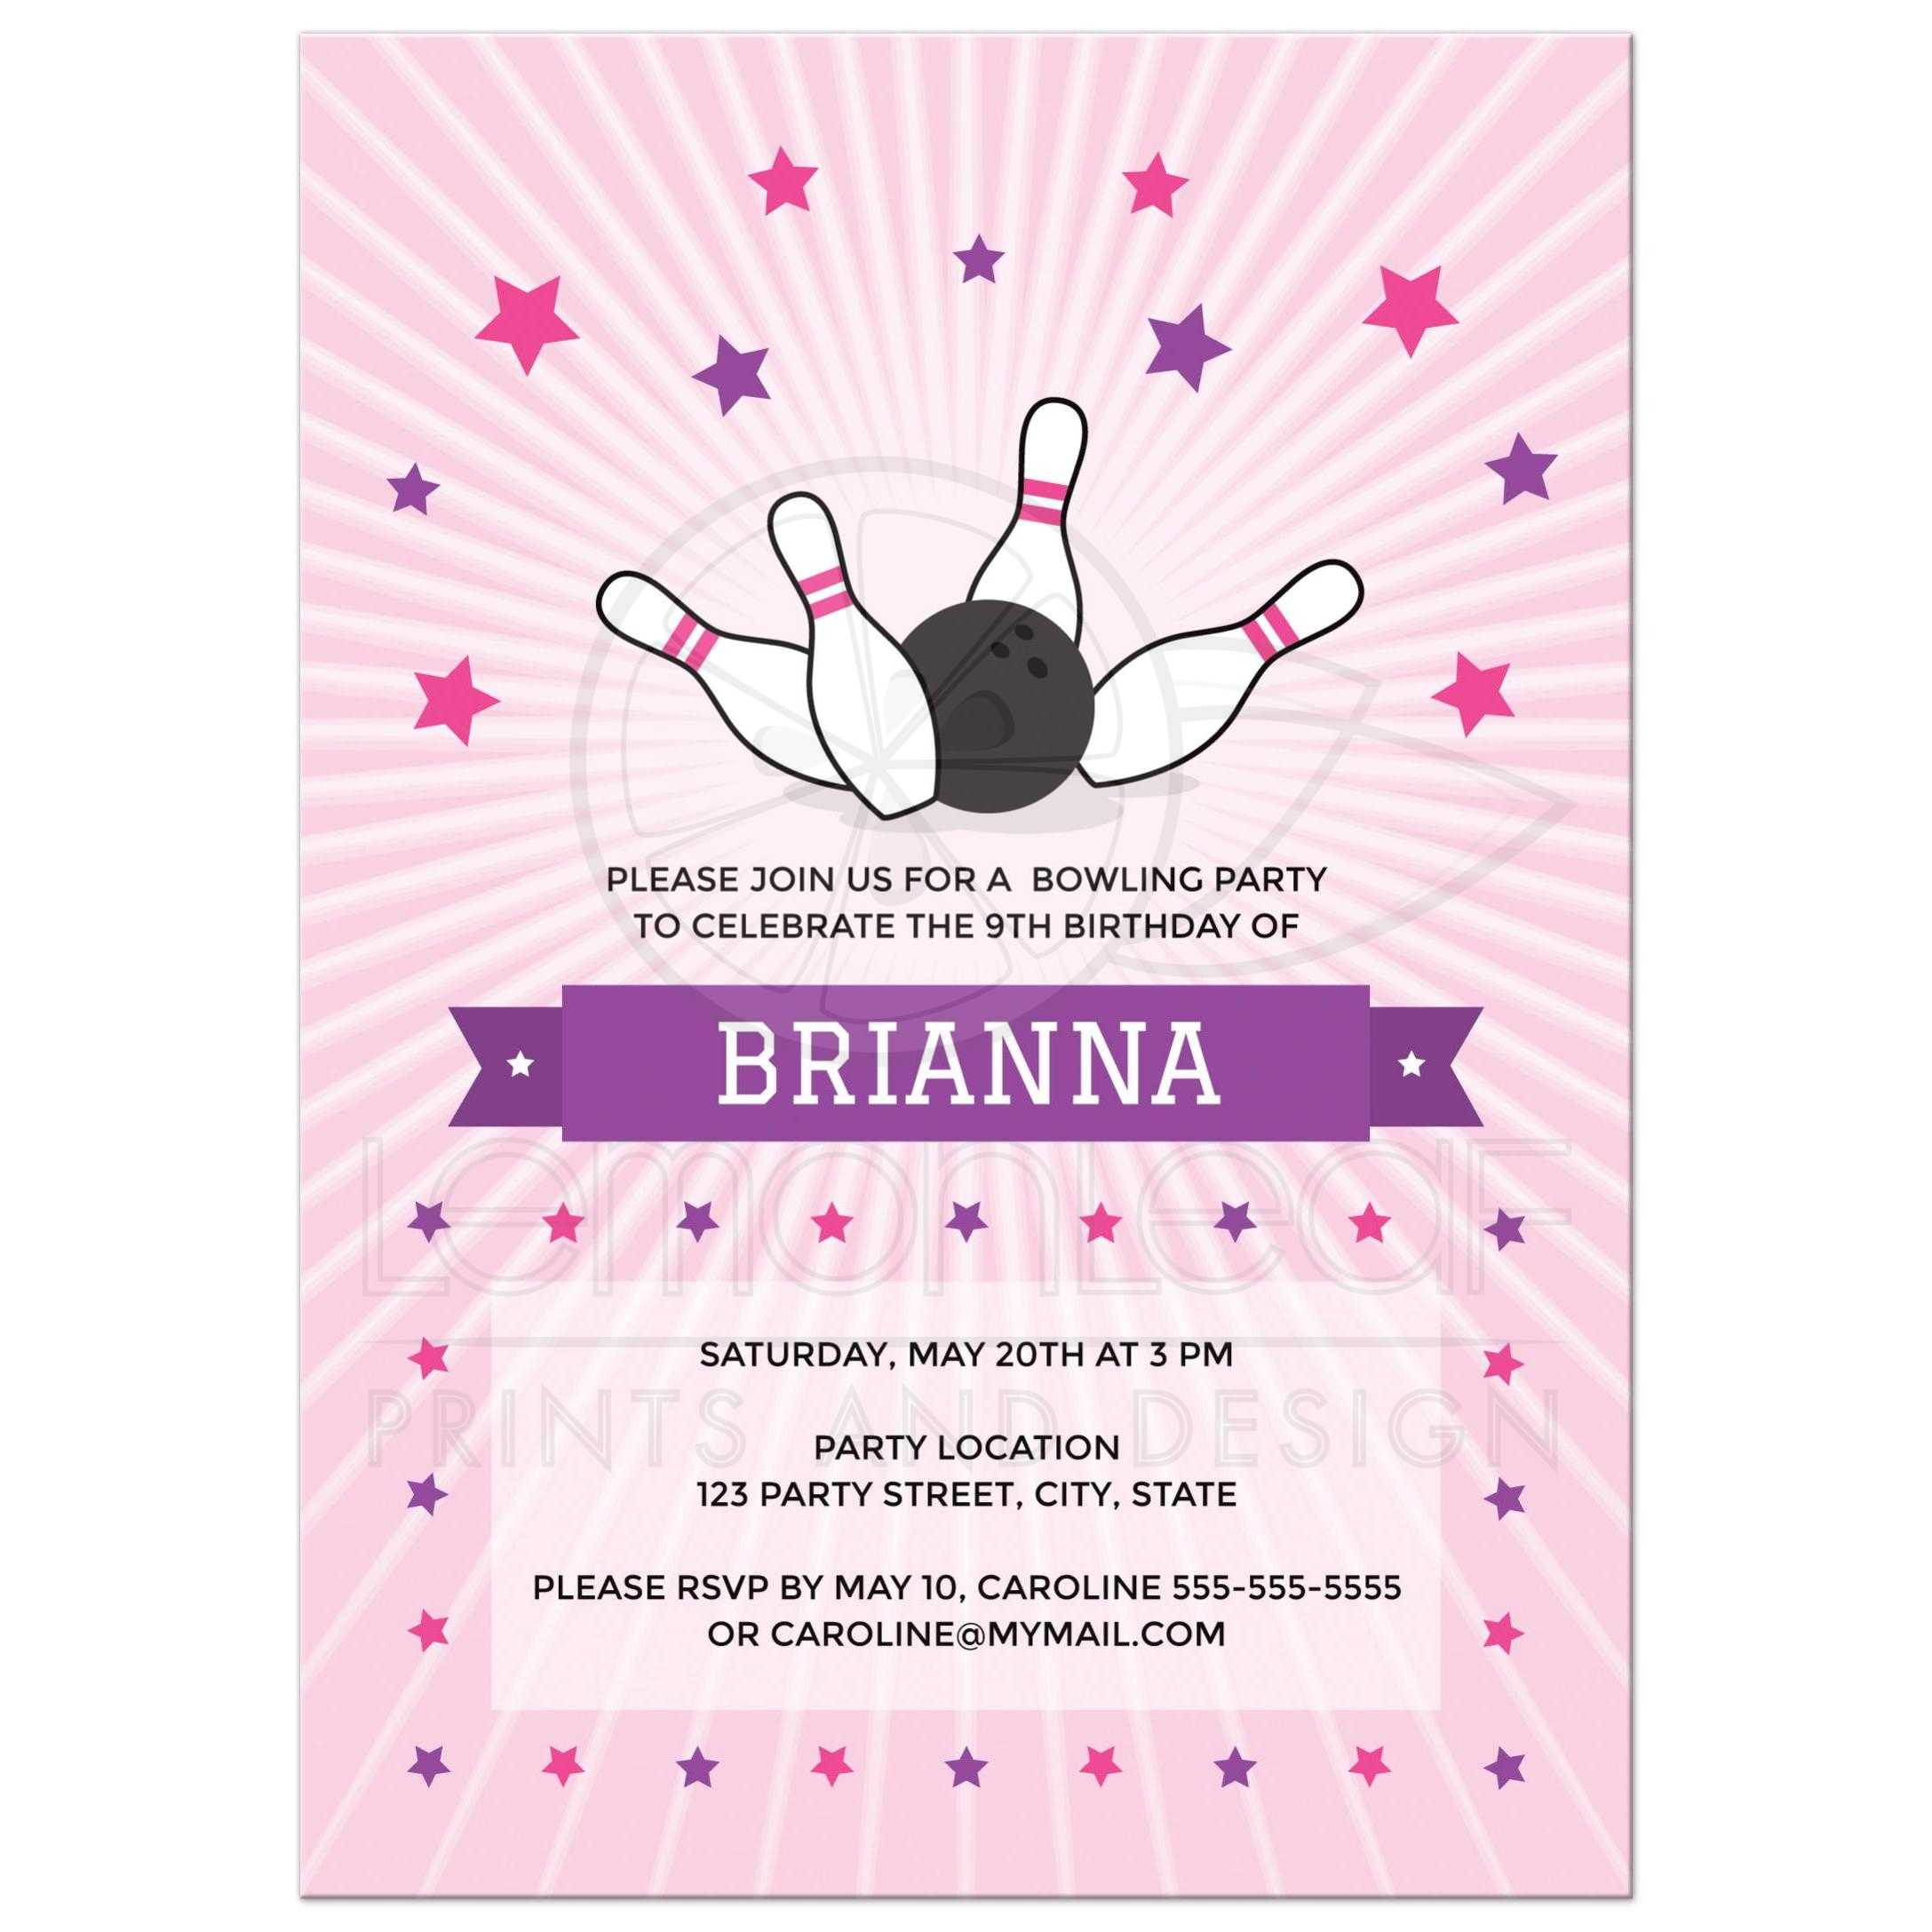 Bowling birthday party invitation pink ball knocking down pins on pink bowling party invitation for girls with bowling ball knocking down pins filmwisefo